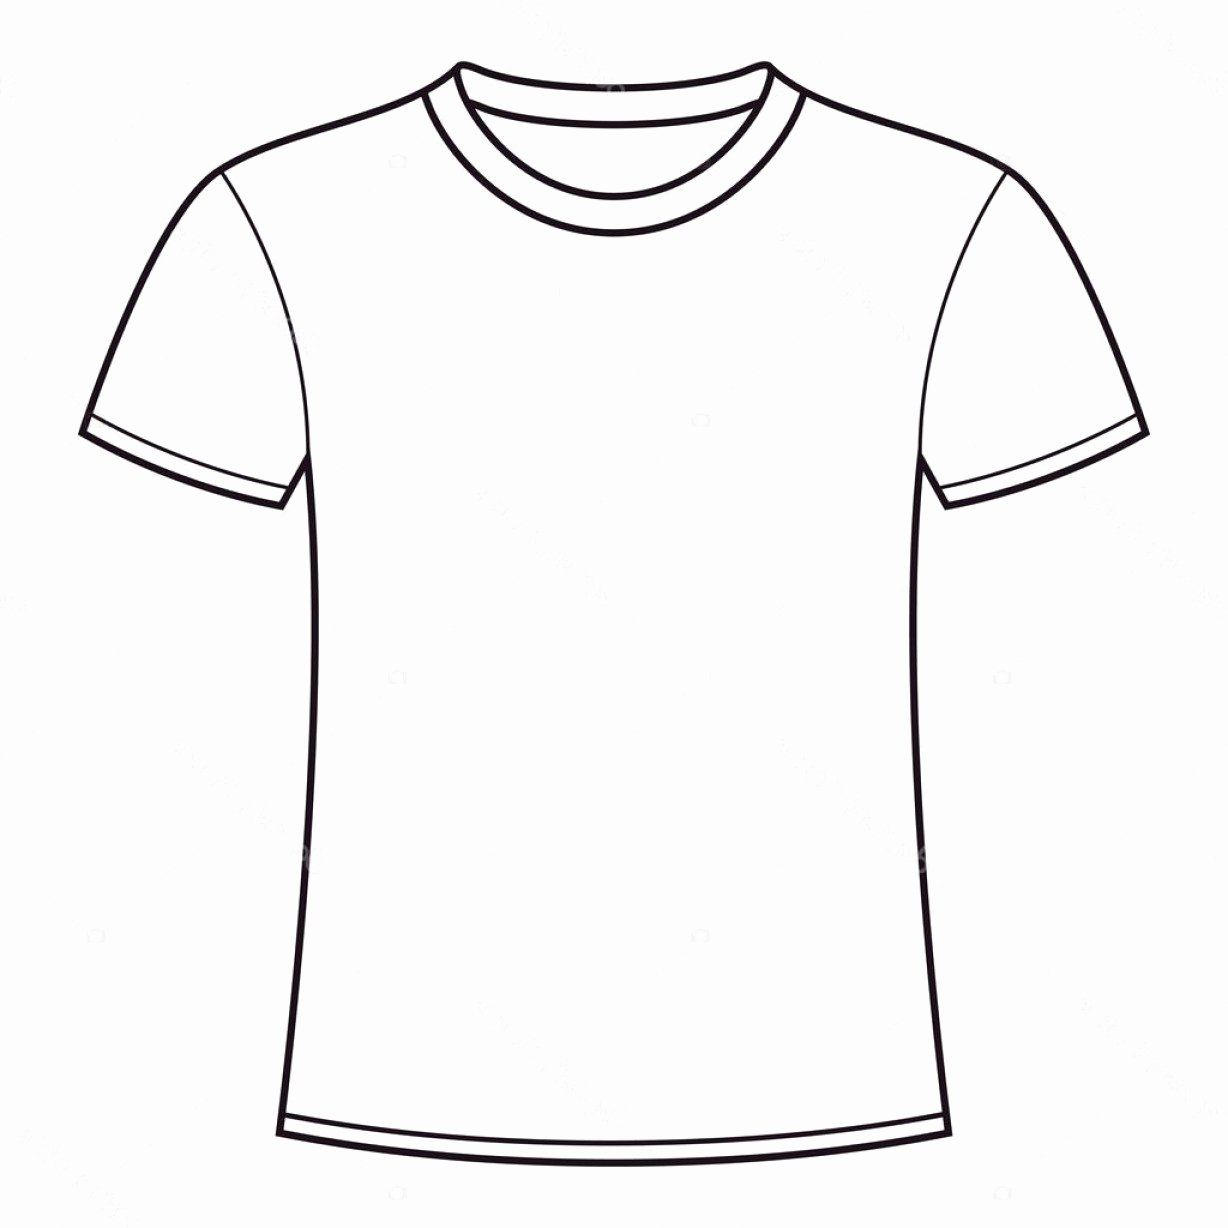 Download Blank Tshirt Template Unique Stock Illustration Blank T Shirt Template Peterainsworth Shirt Template T Shirt Design Template Tshirt Template